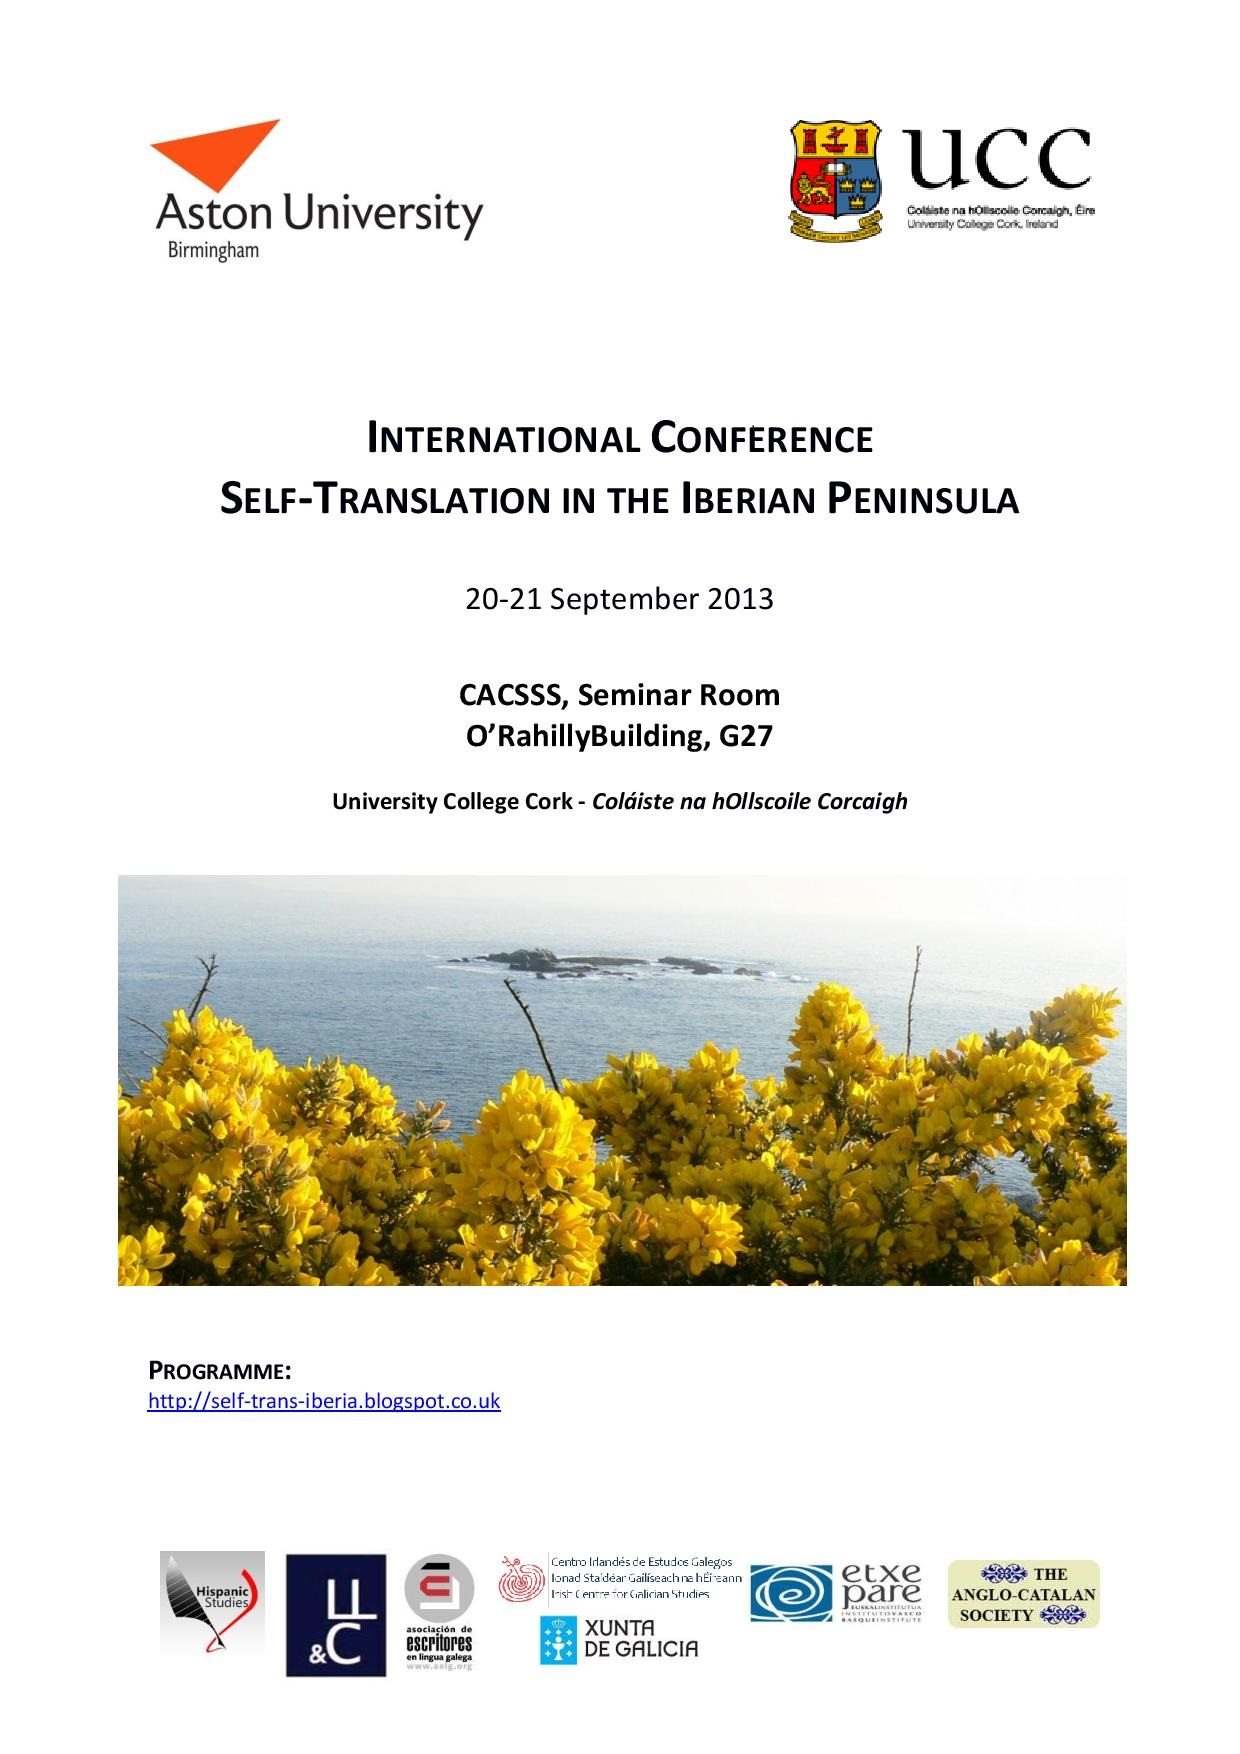 Self-Translation in the Iberian Peninsula International Conference